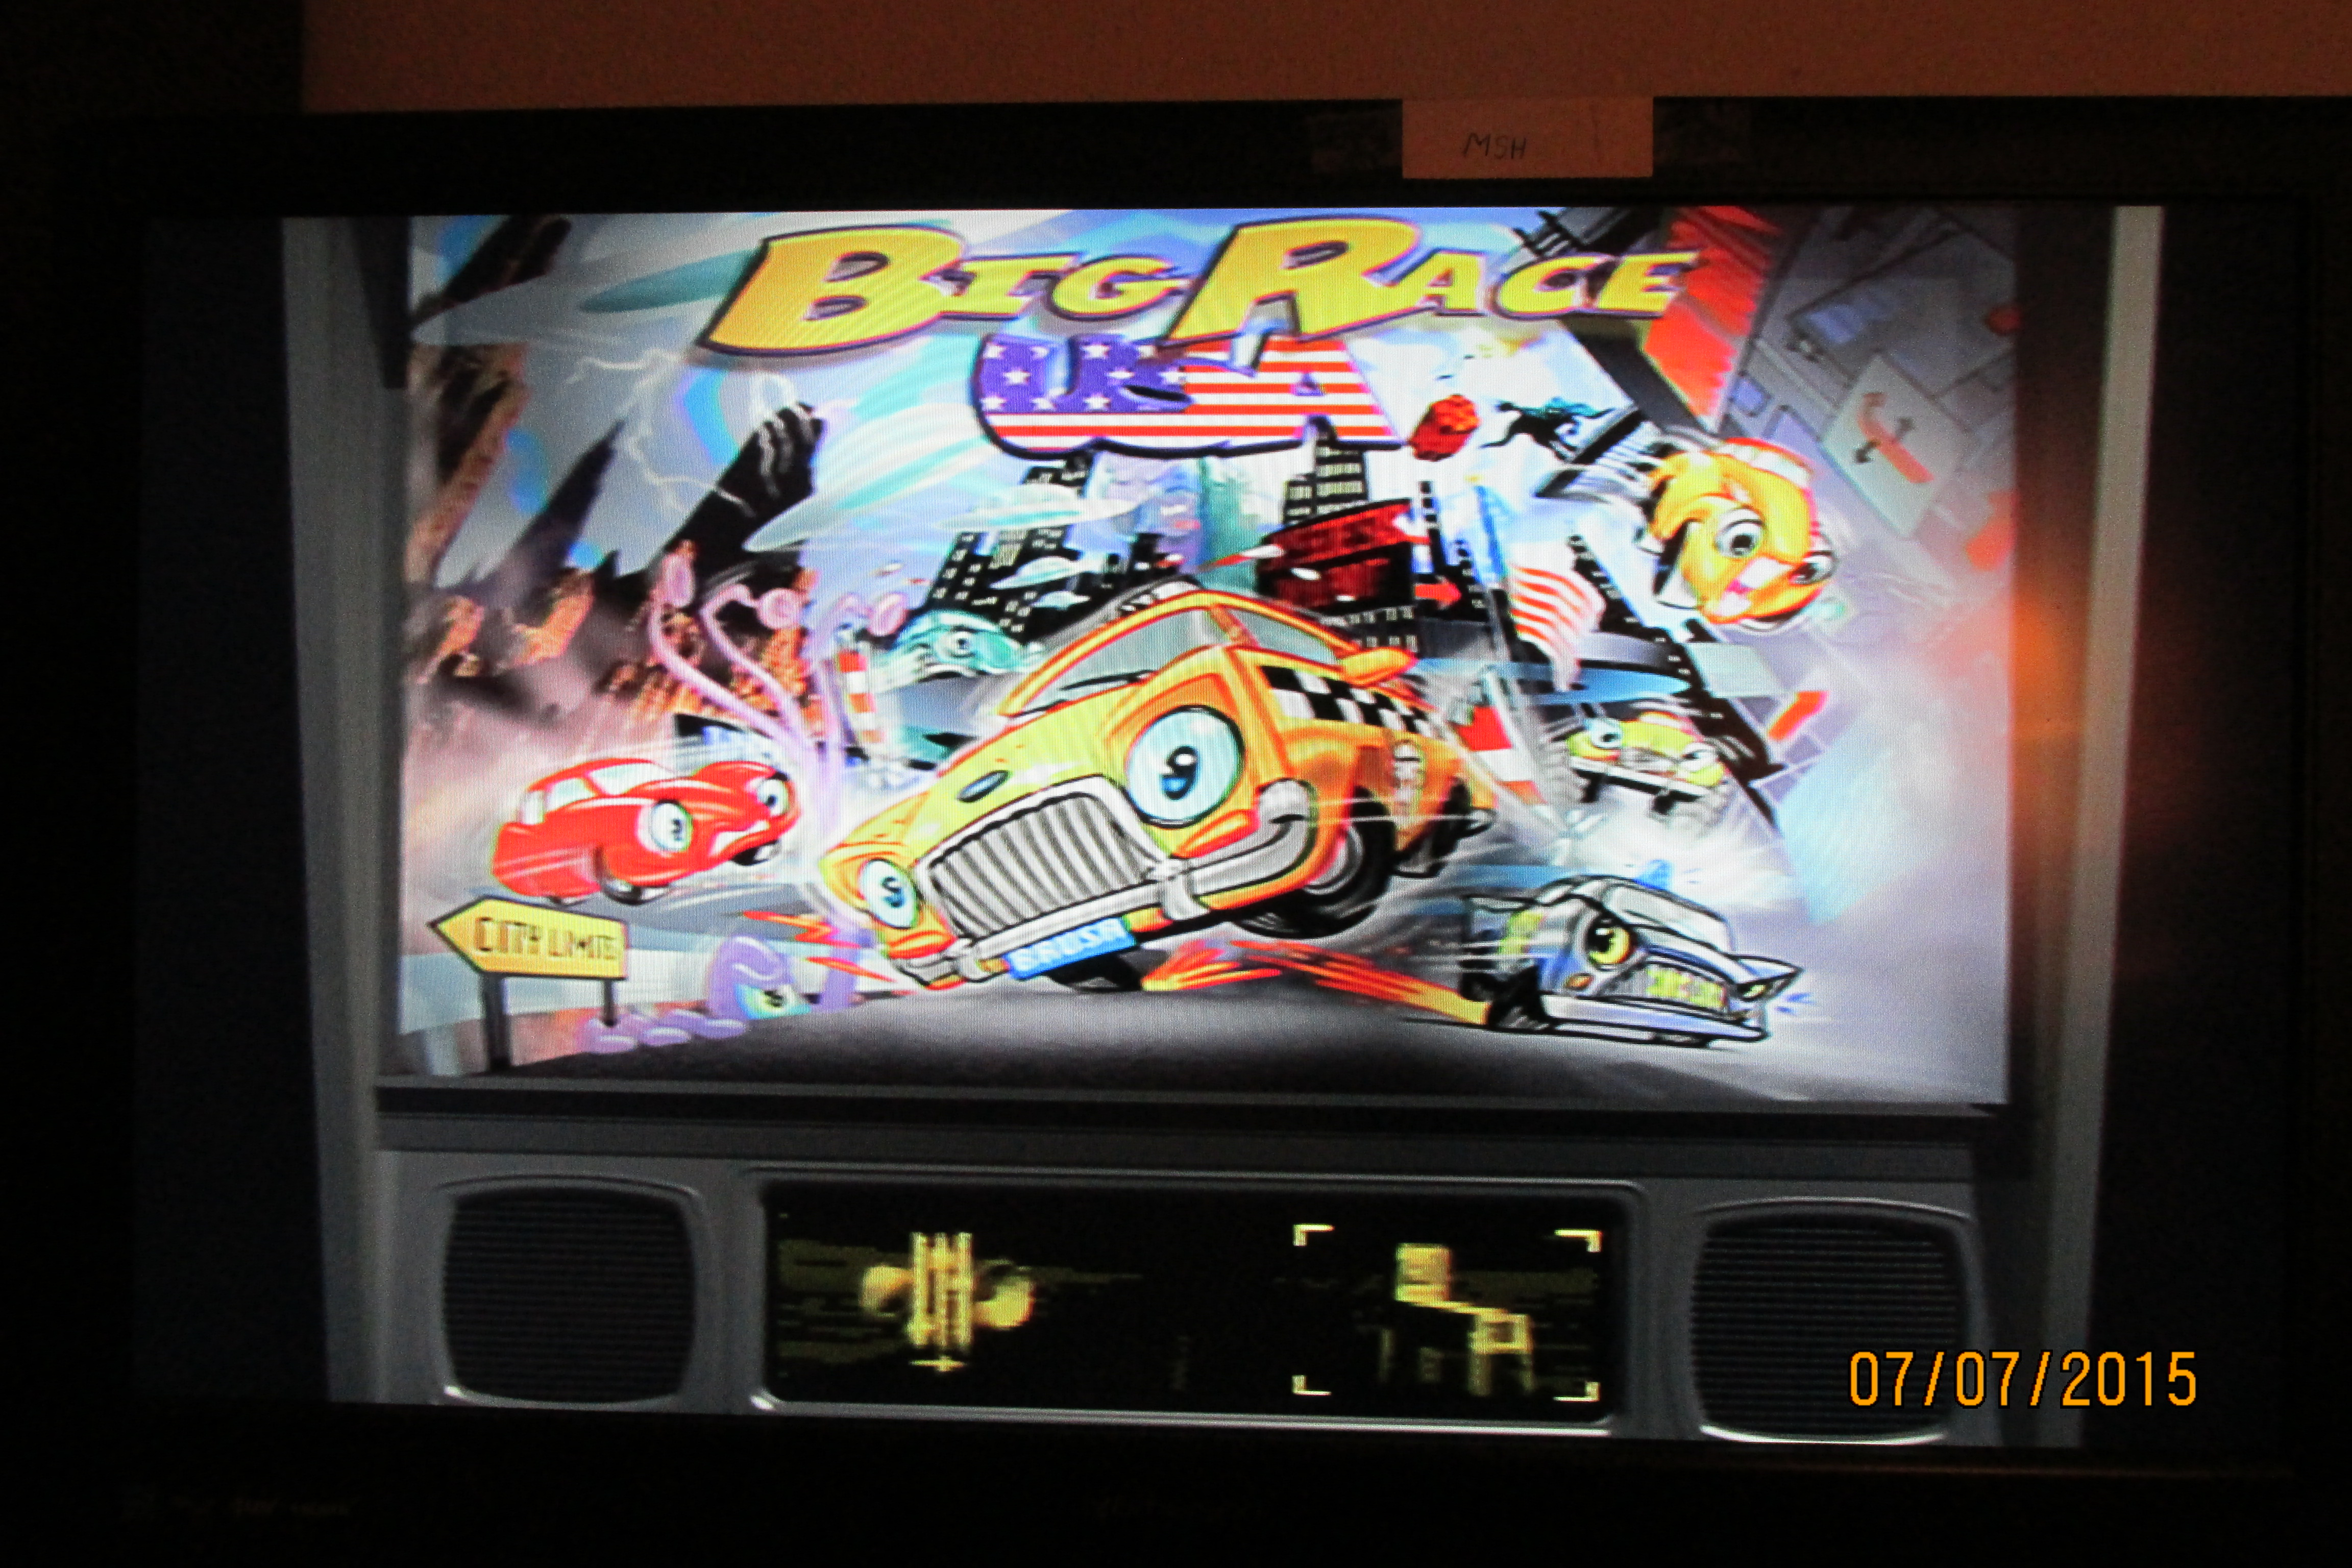 Mark: Pro Pinball: Big USA [Normal] (Playstation 1) 64,745,390 points on 2015-07-12 22:28:57